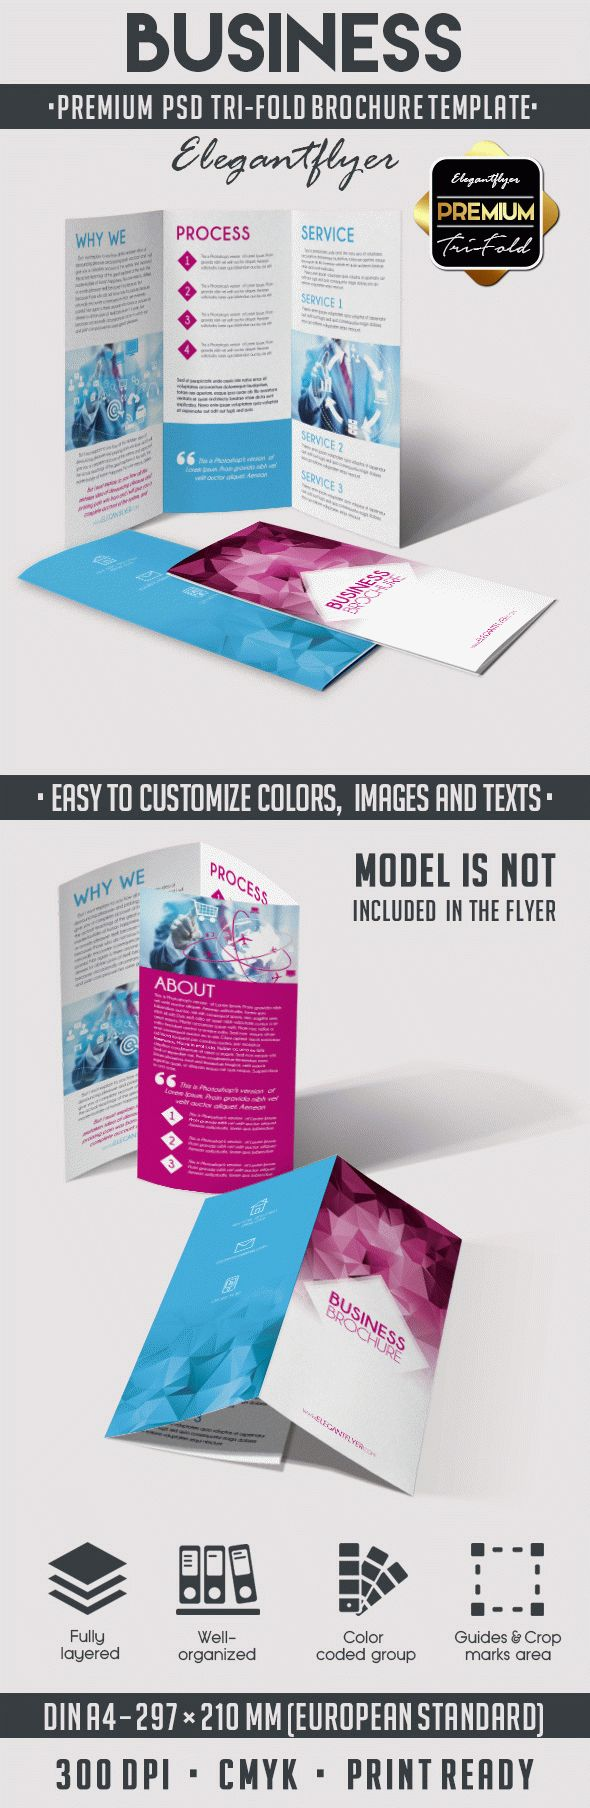 Business tri fold brochure psd template by elegantflyer for Tri fold business brochure template